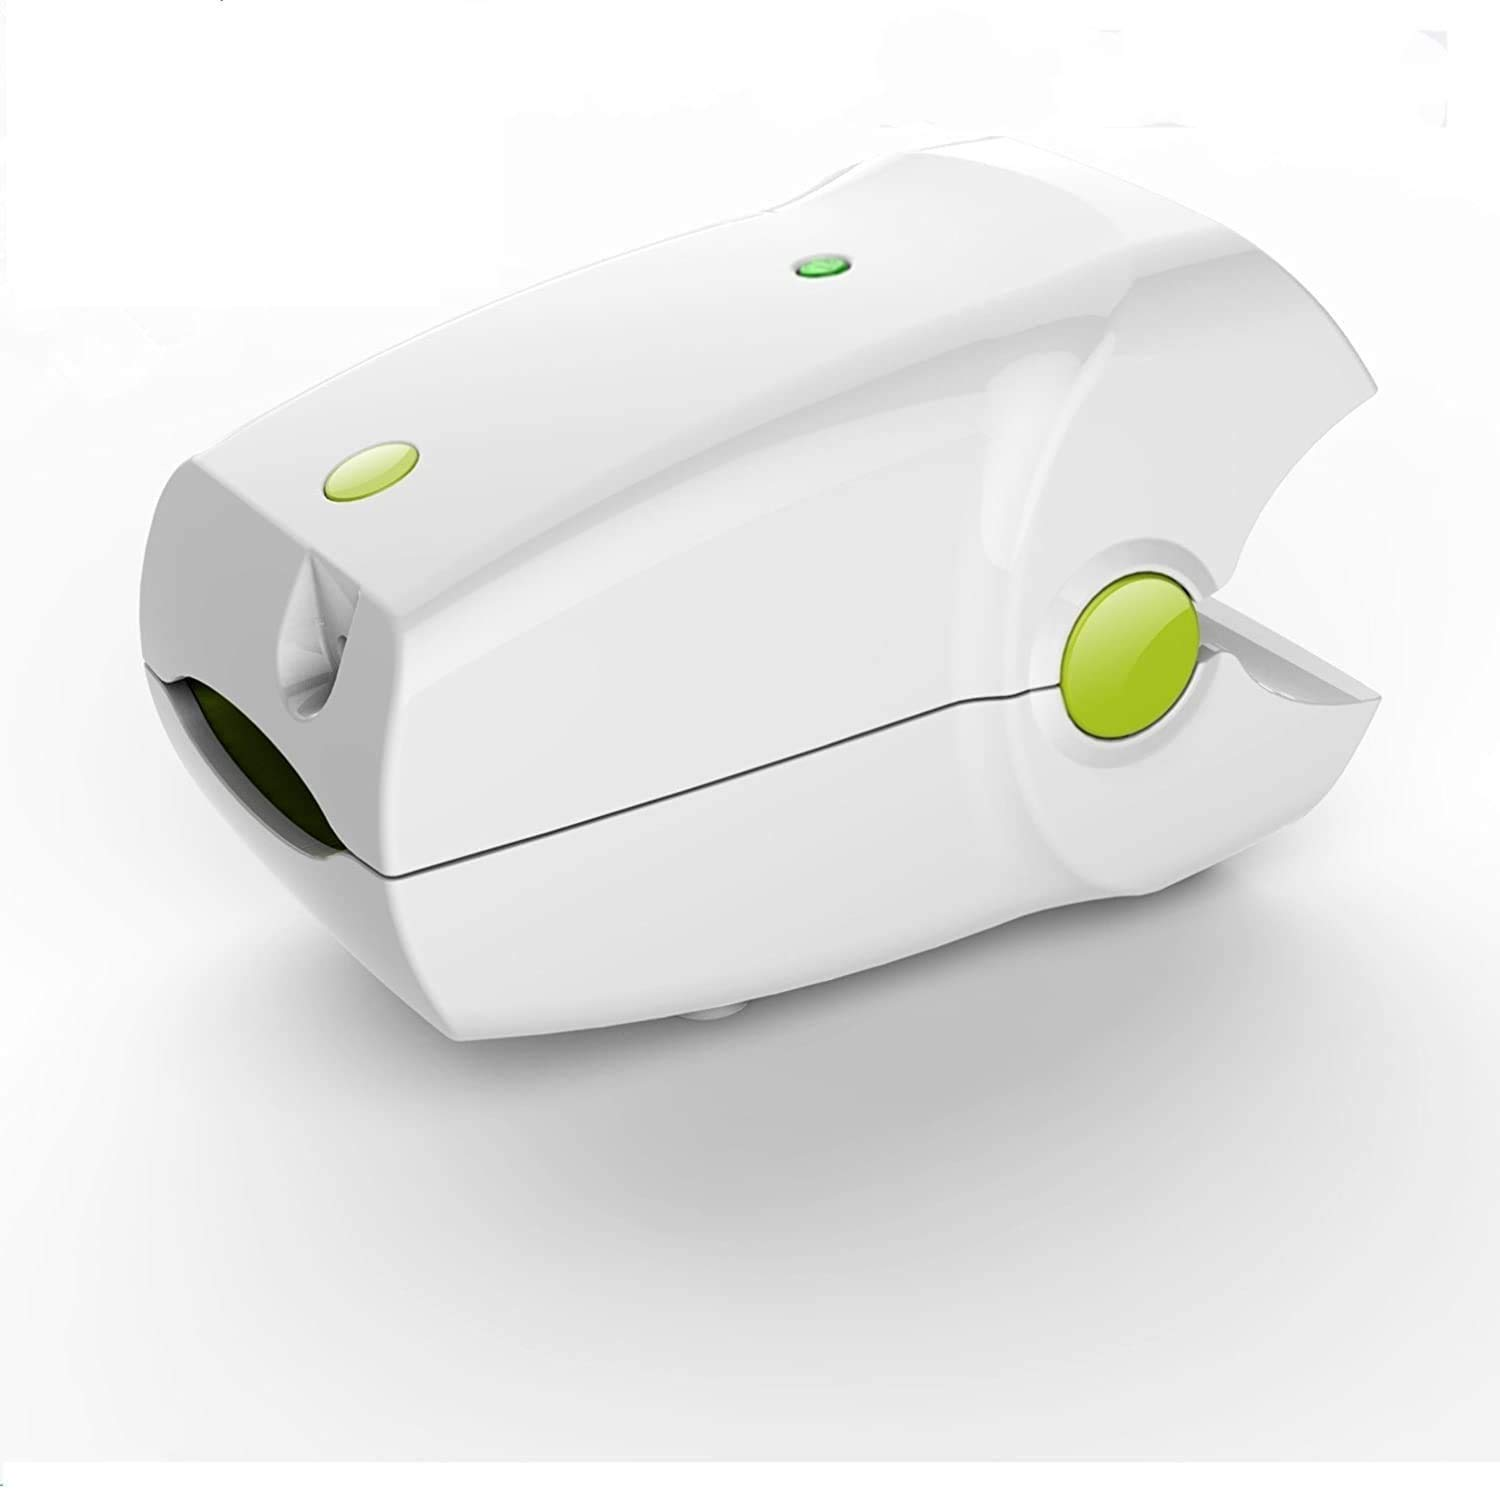 Rechargeable Nail Fungus Laser Treatment Instrument for Onychomycosis Cure and Home Use